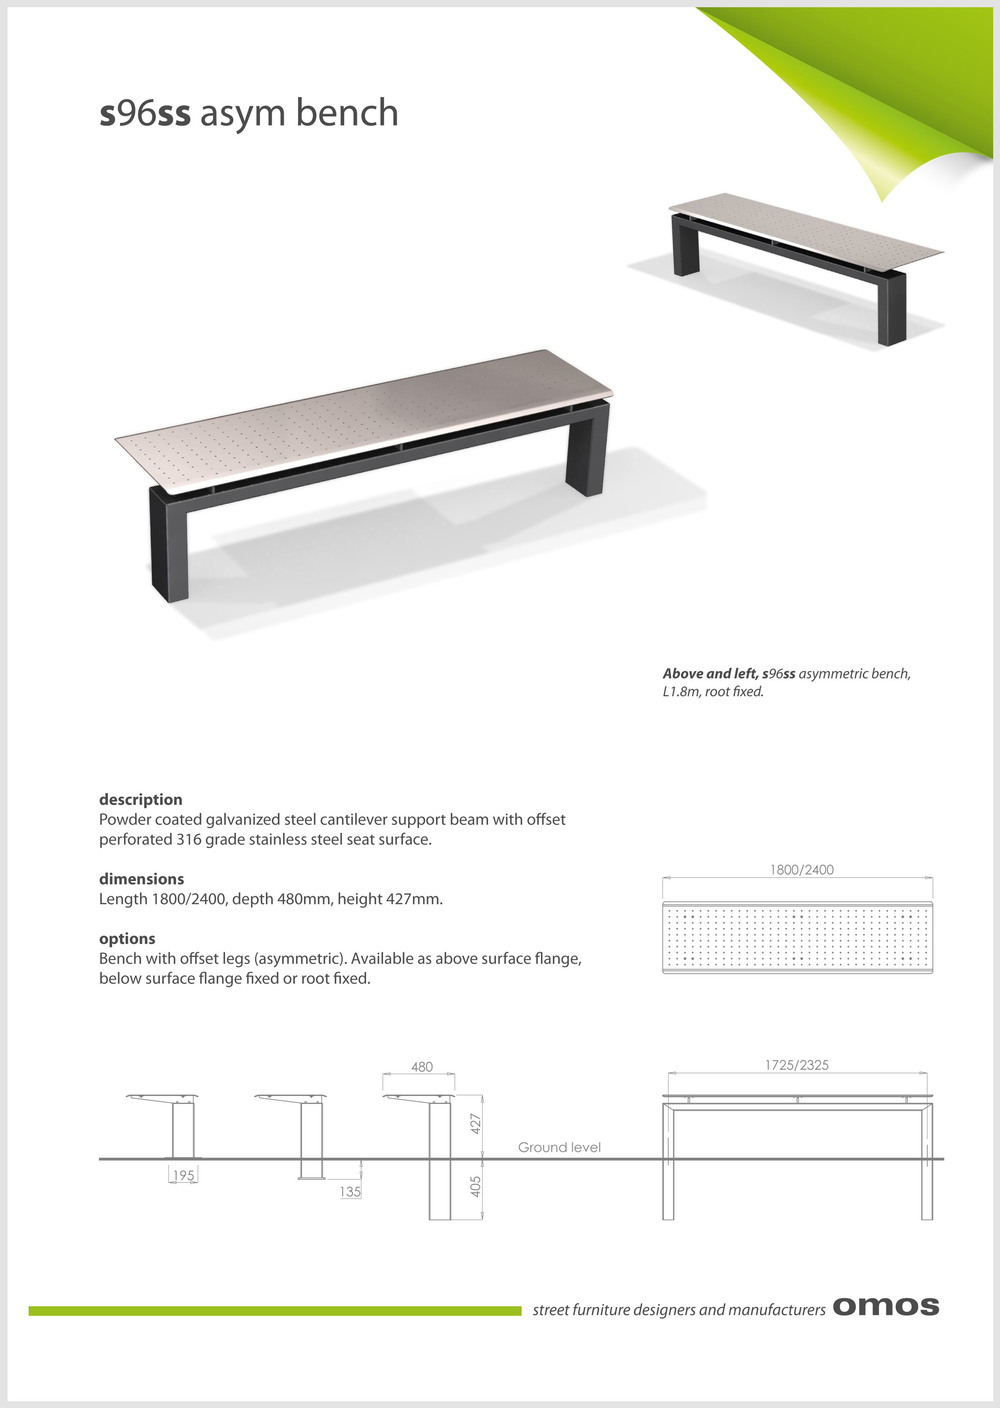 s96ss asym bench data sheet.jpg